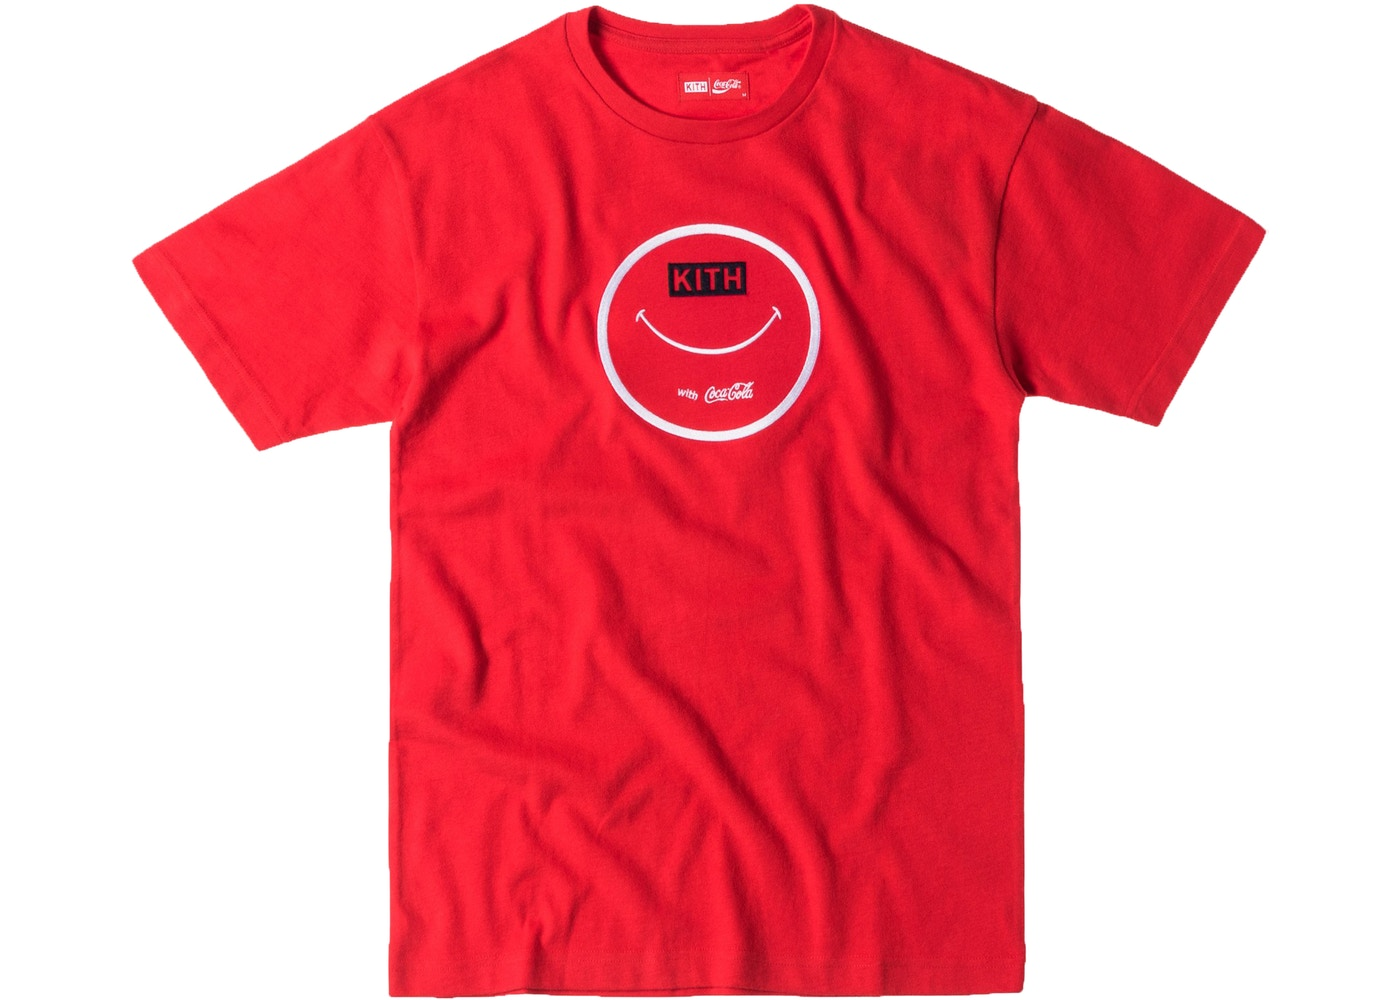 26ba7be5 Kith Coca Cola Smile With Coke Tee Red - SS17